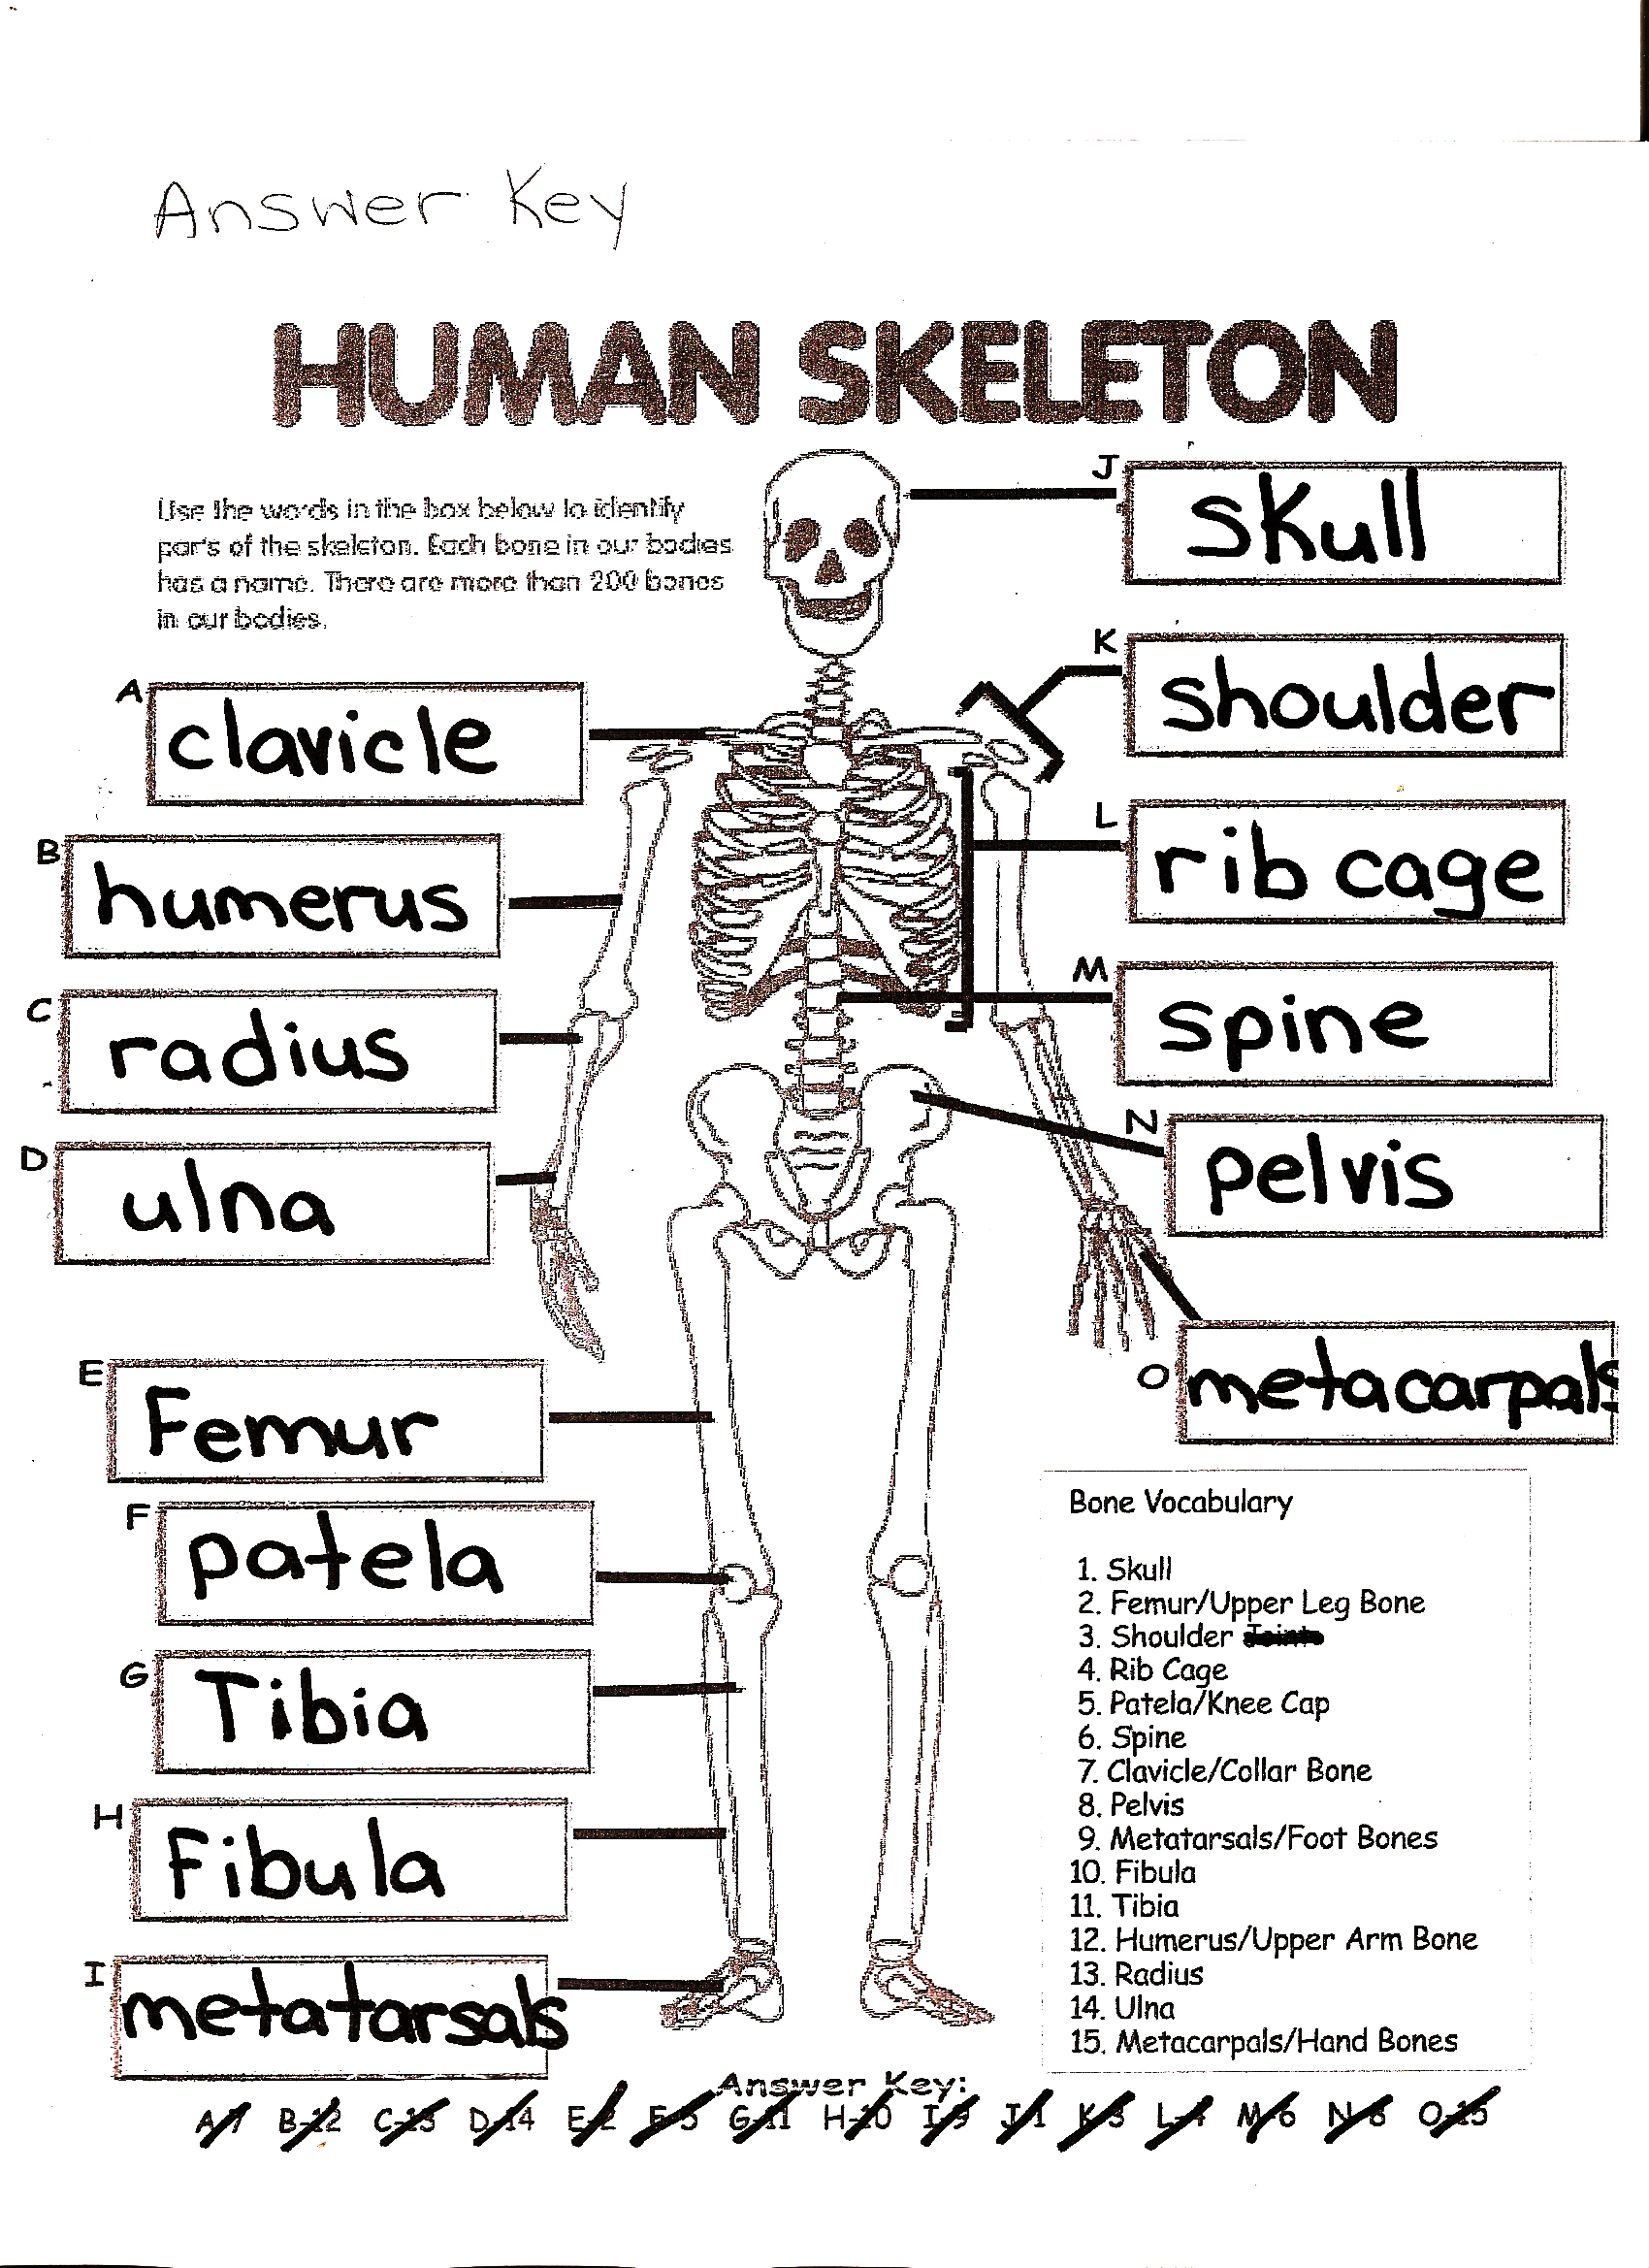 muscular and skeletal system worksheet • remember, you already colored a longitudinal view of skeletal muscle fibers in the top figure n c m l k d j h i f g d e c b a coloring exercise 4-1  see coloring , , , ,) chapter 4 the muscular system ™ chapter 4 the muscular system.